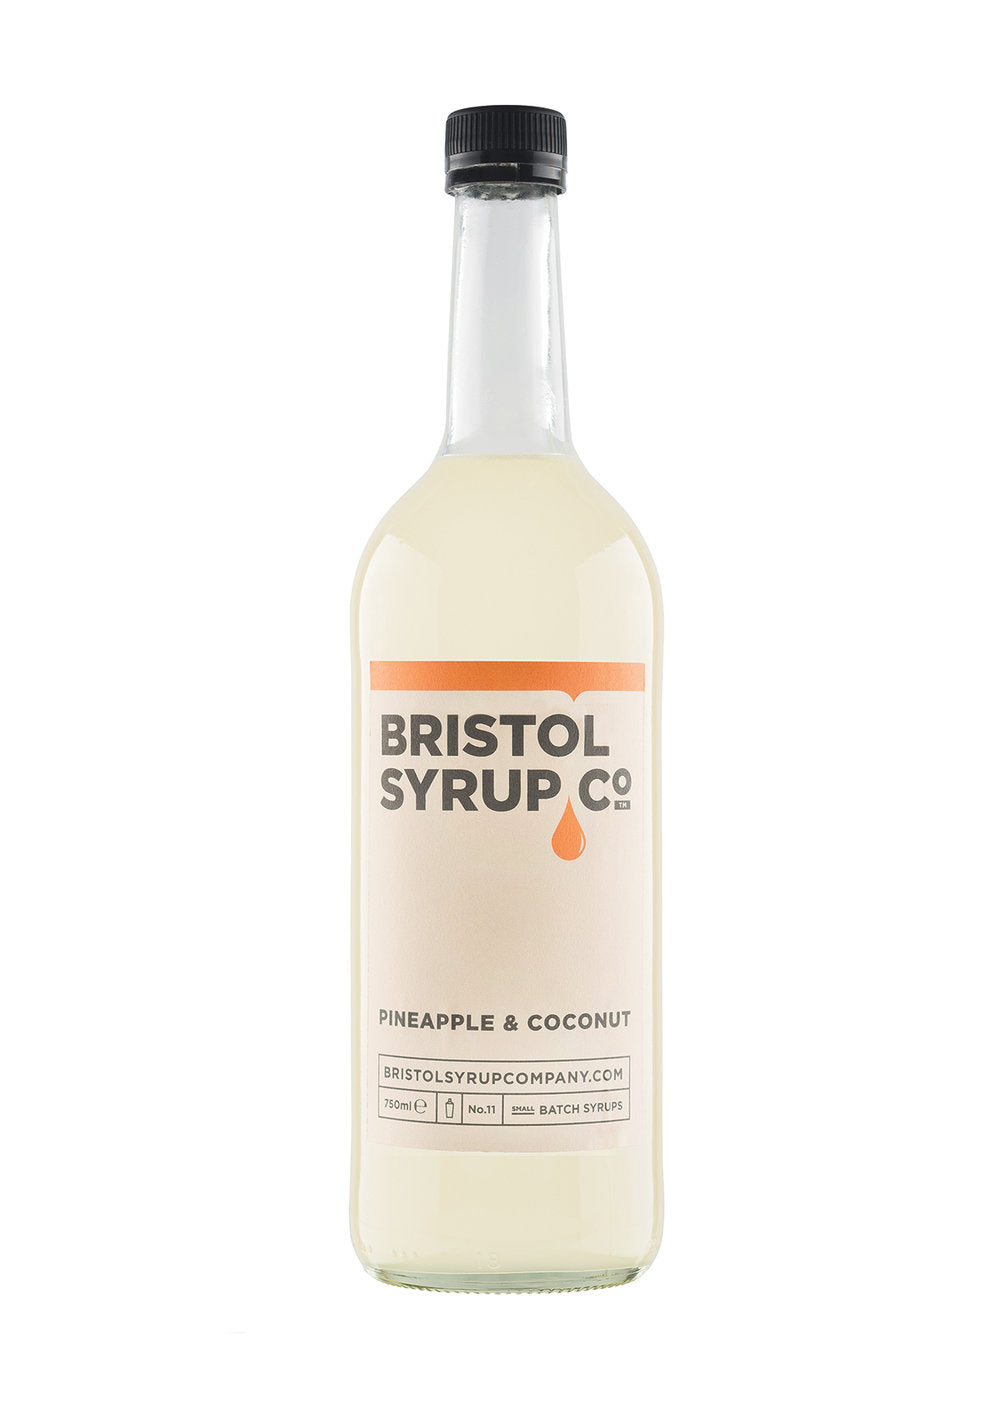 BRISTOL SYRUP CO. PINEAPPLE & COCONUT SYRUP 750ML - Vino Wines